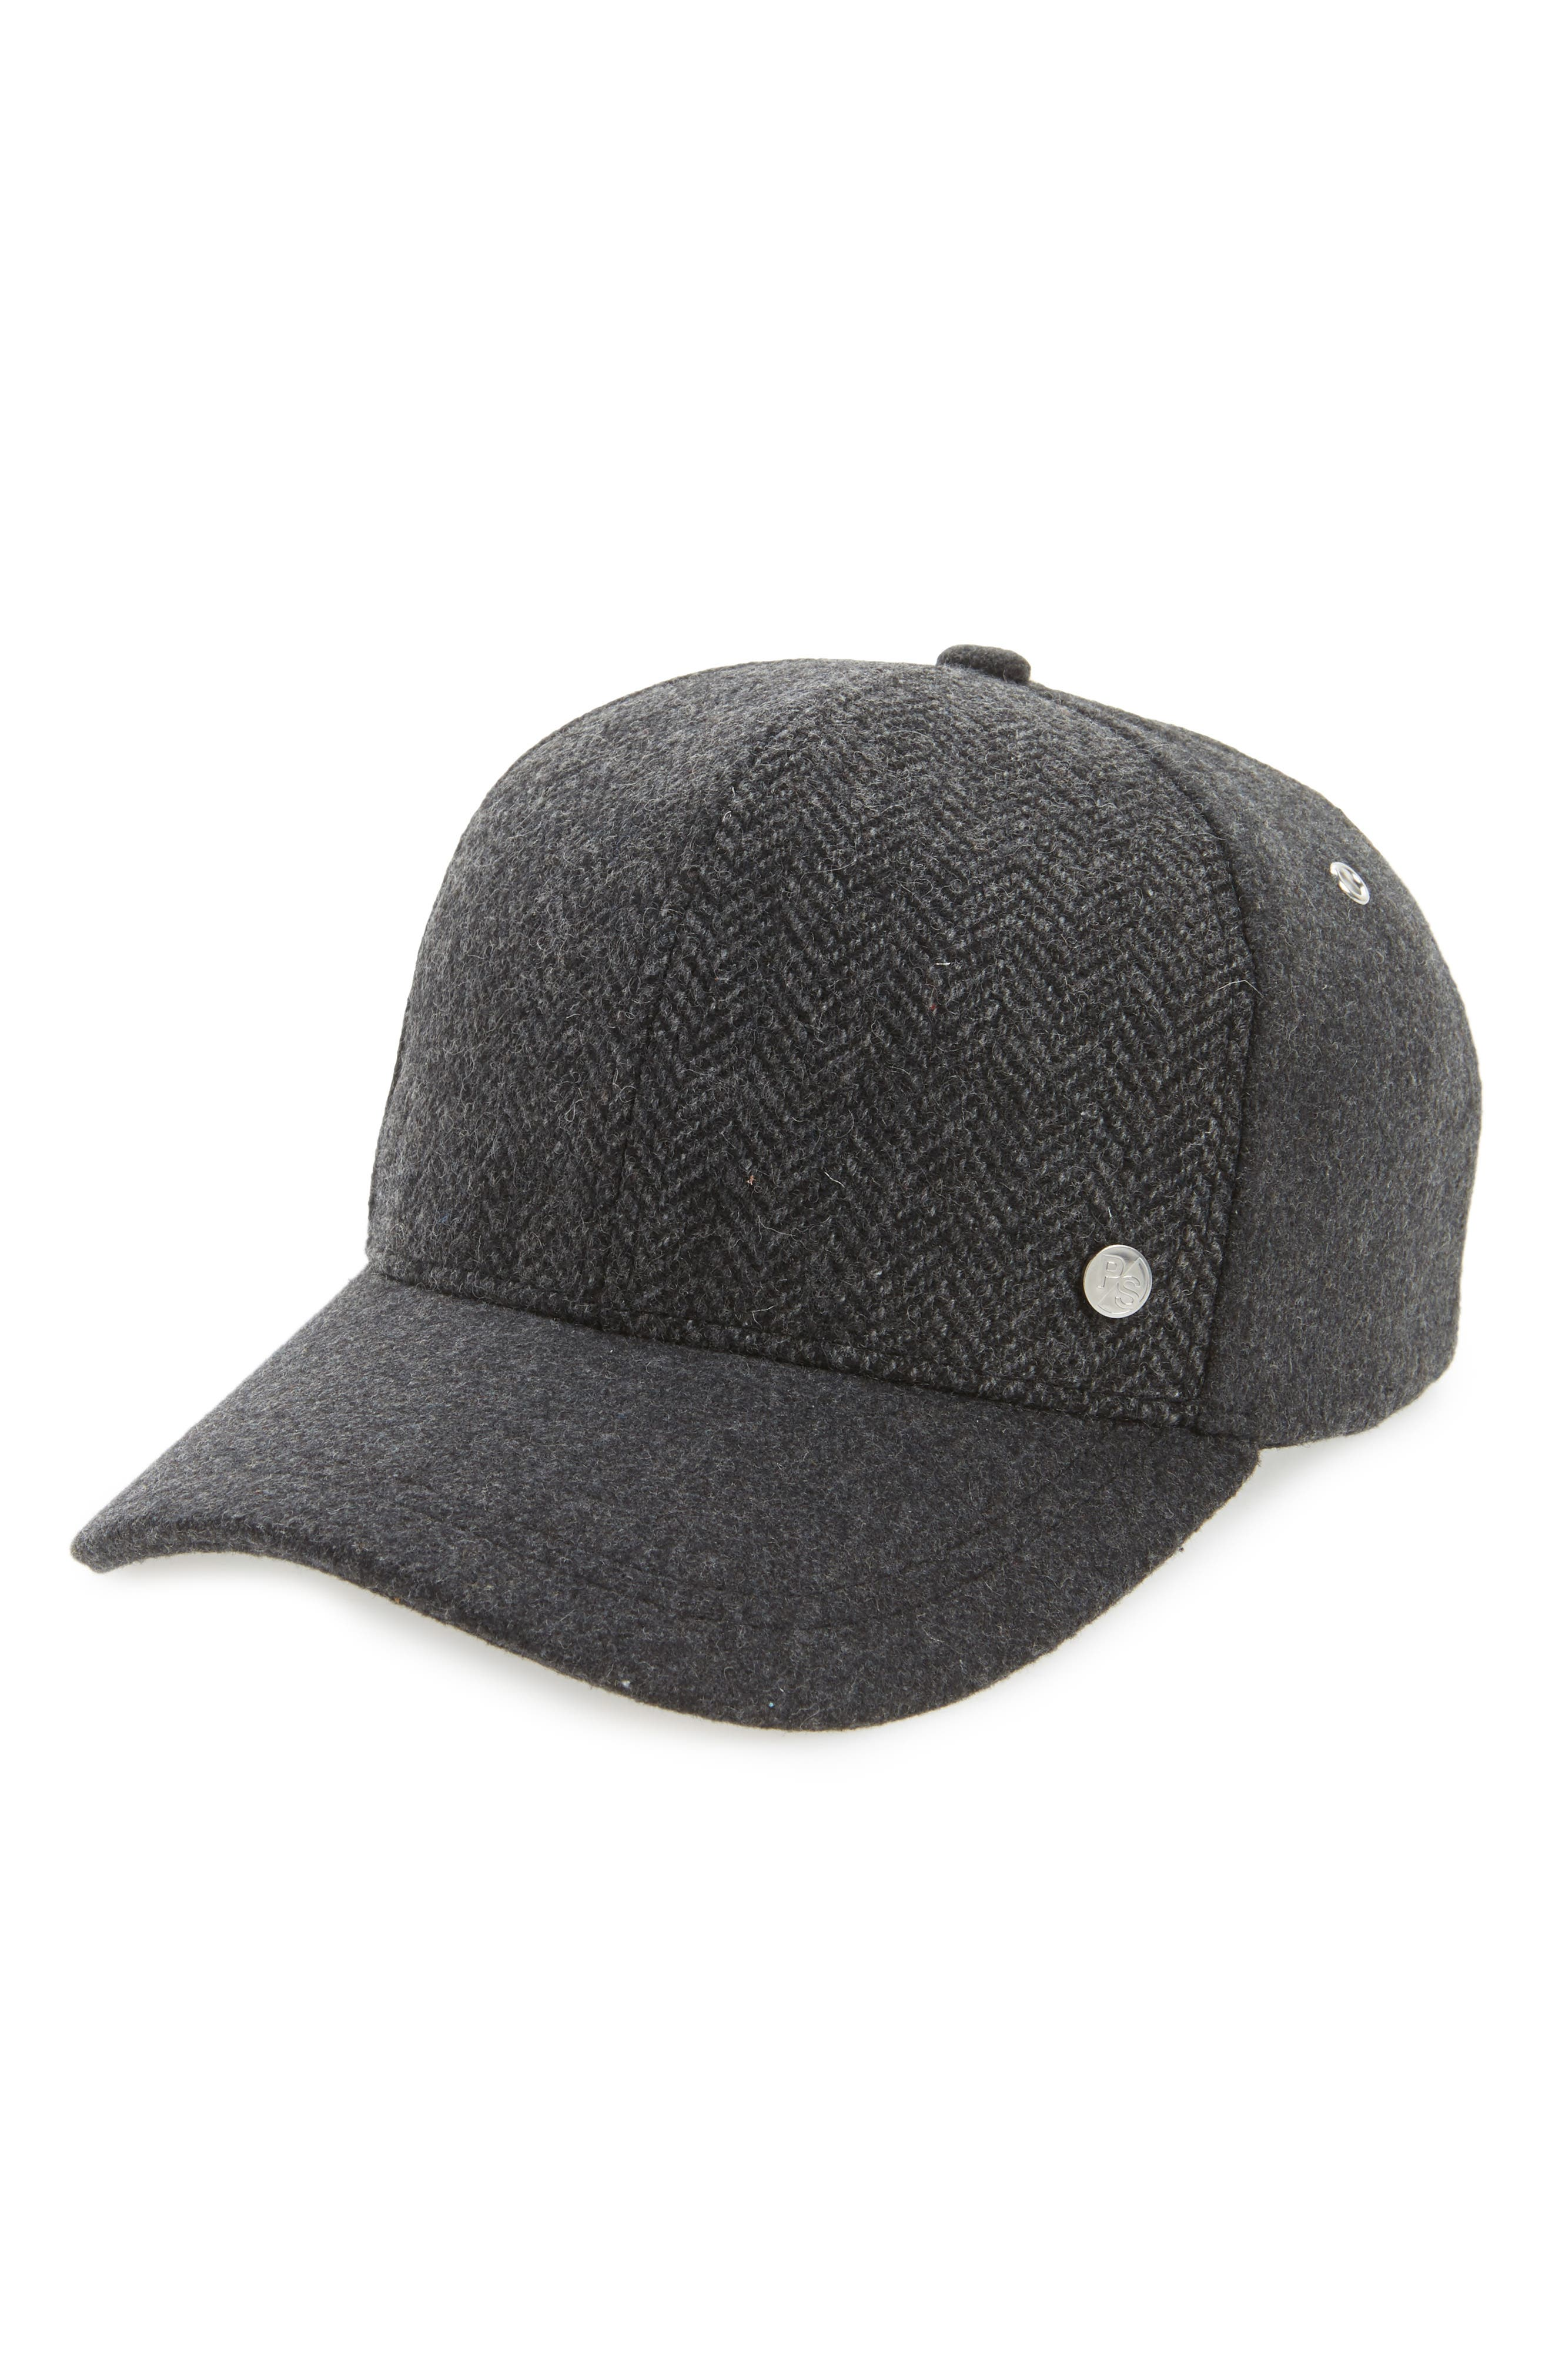 Herringbone Baseball Cap,                             Main thumbnail 1, color,                             021